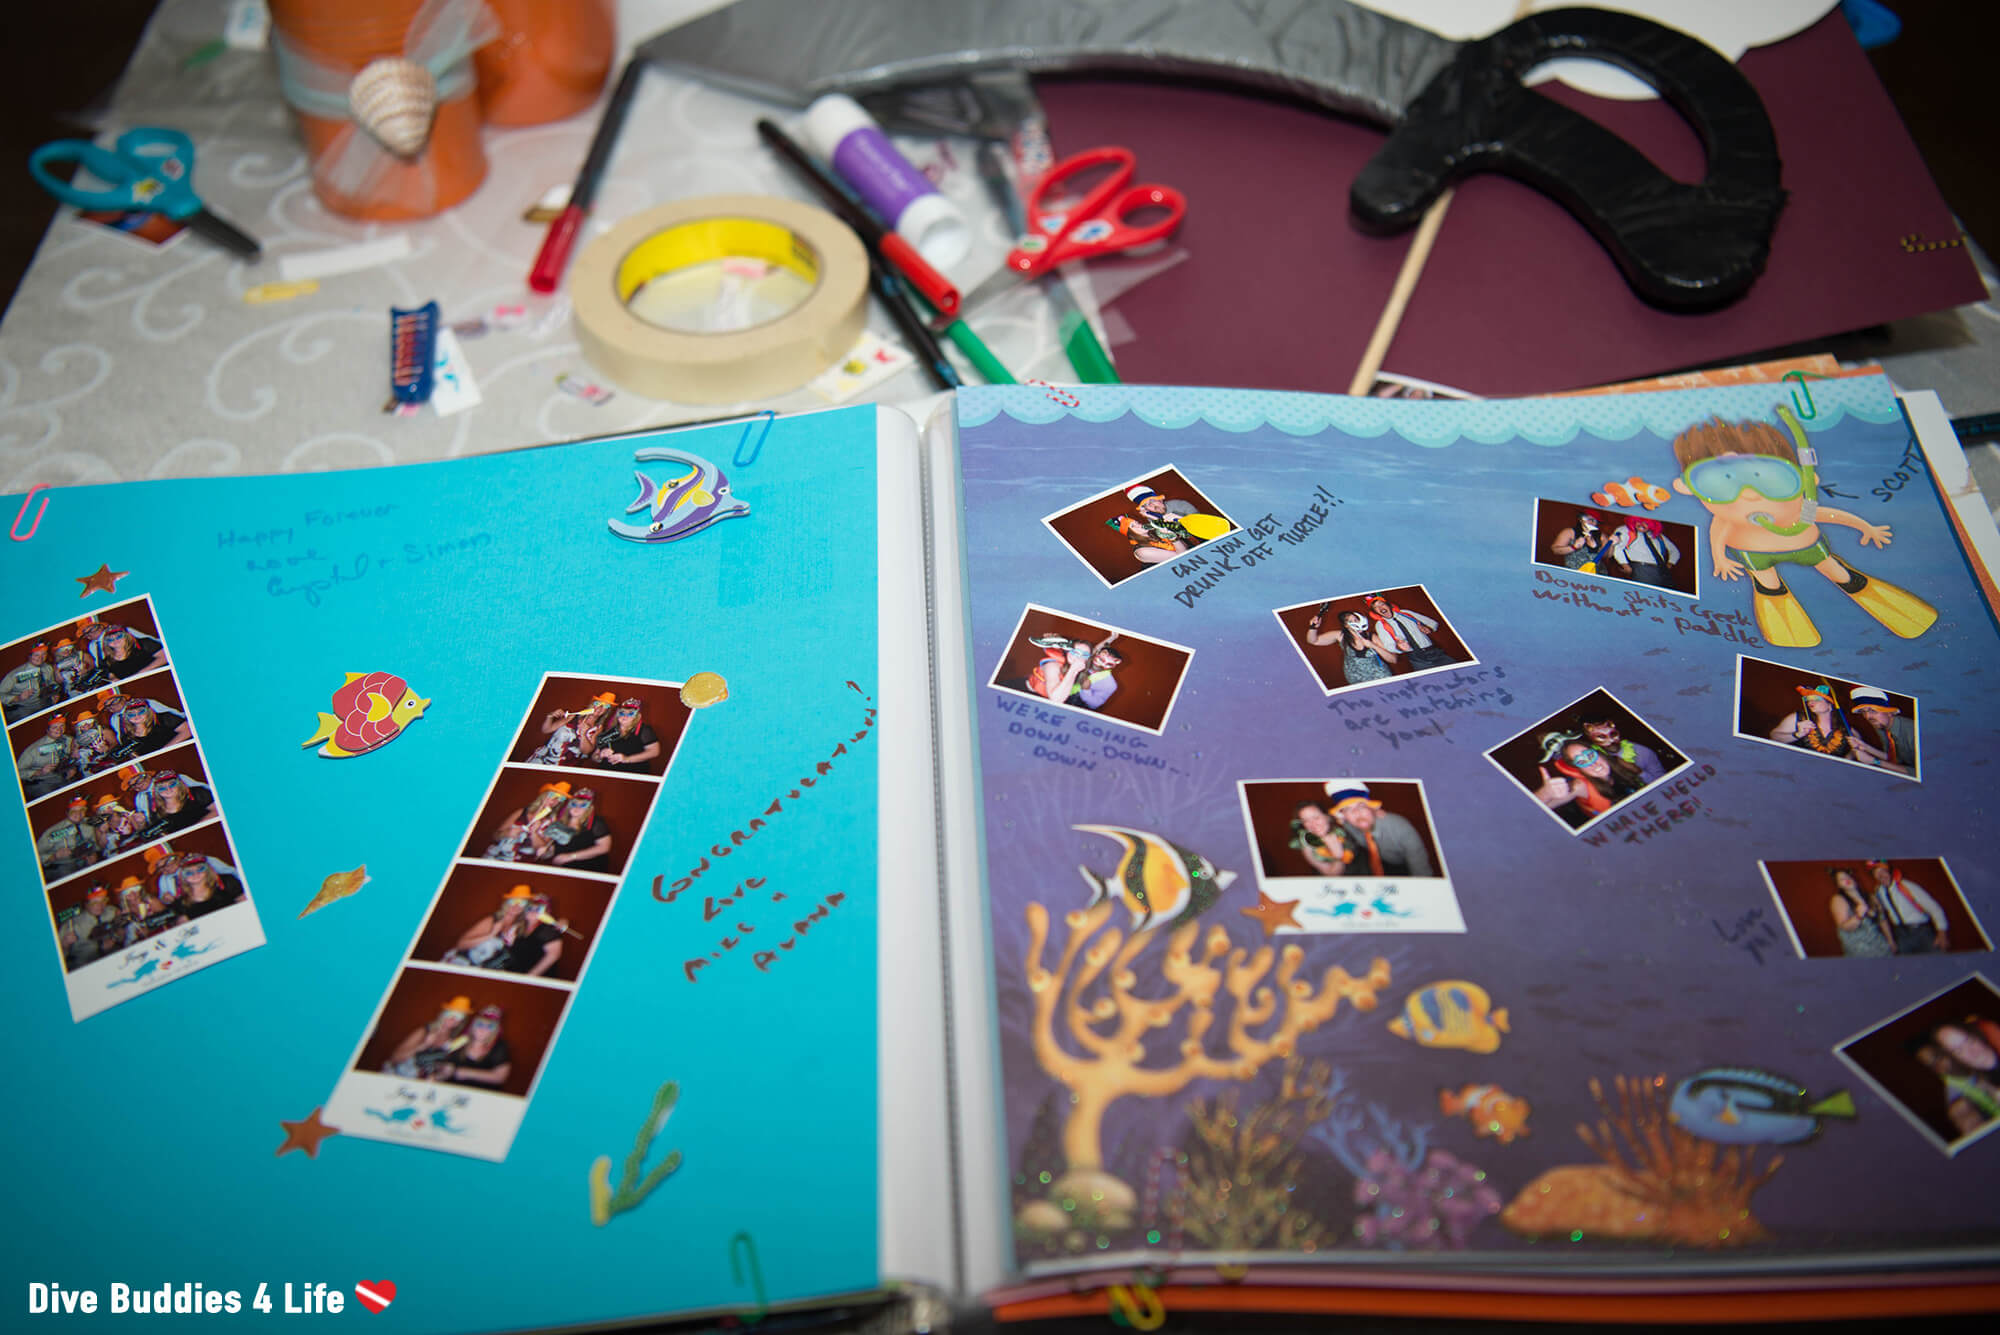 Scuba Diving Themed Guestbook From The Photo booth